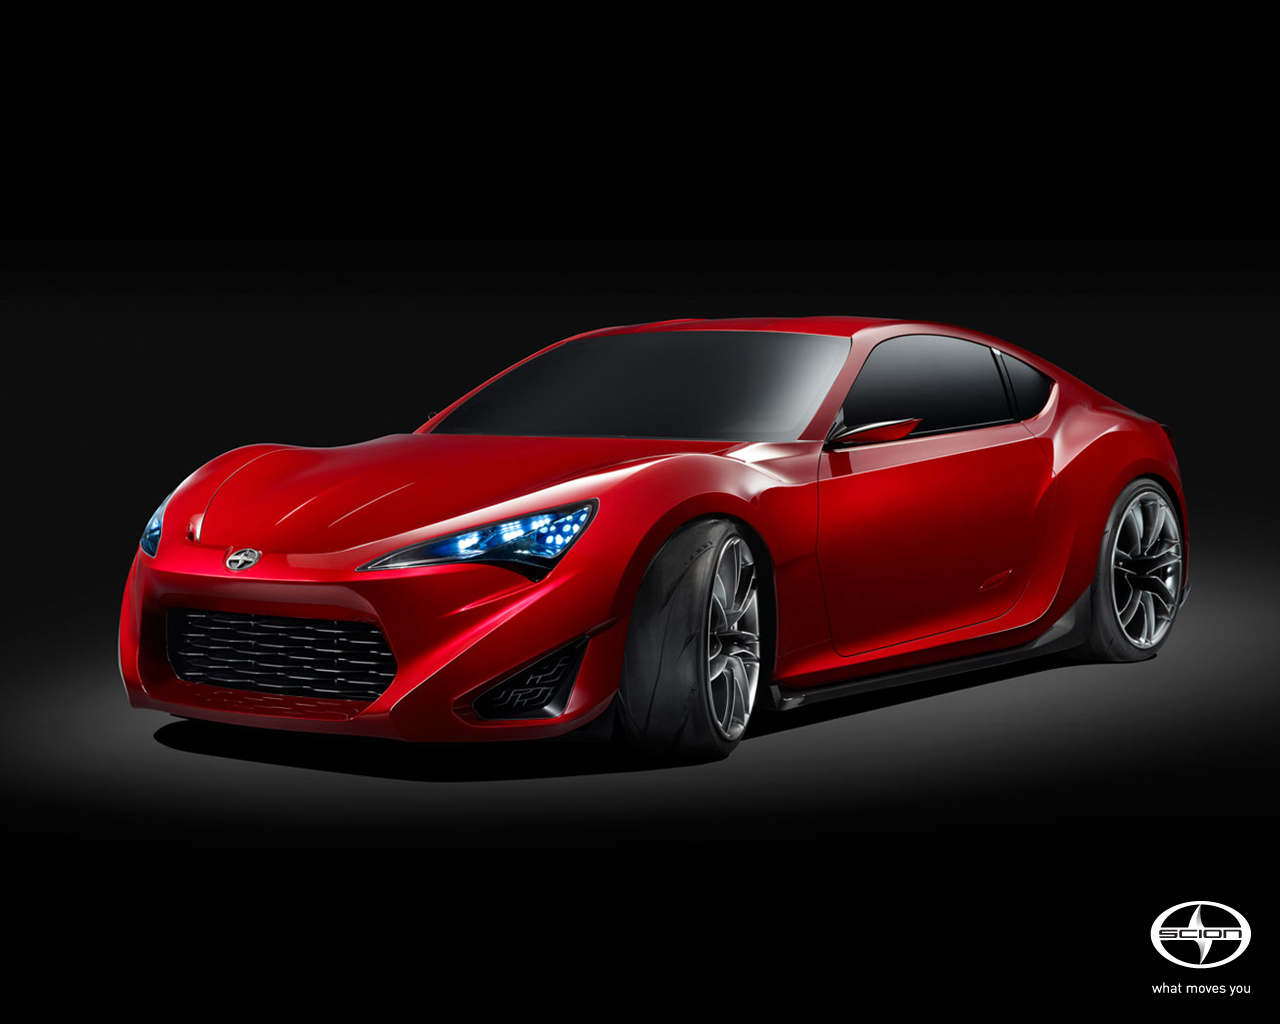 Scion-FR-S-Car-wallpaper-wp5802526-1